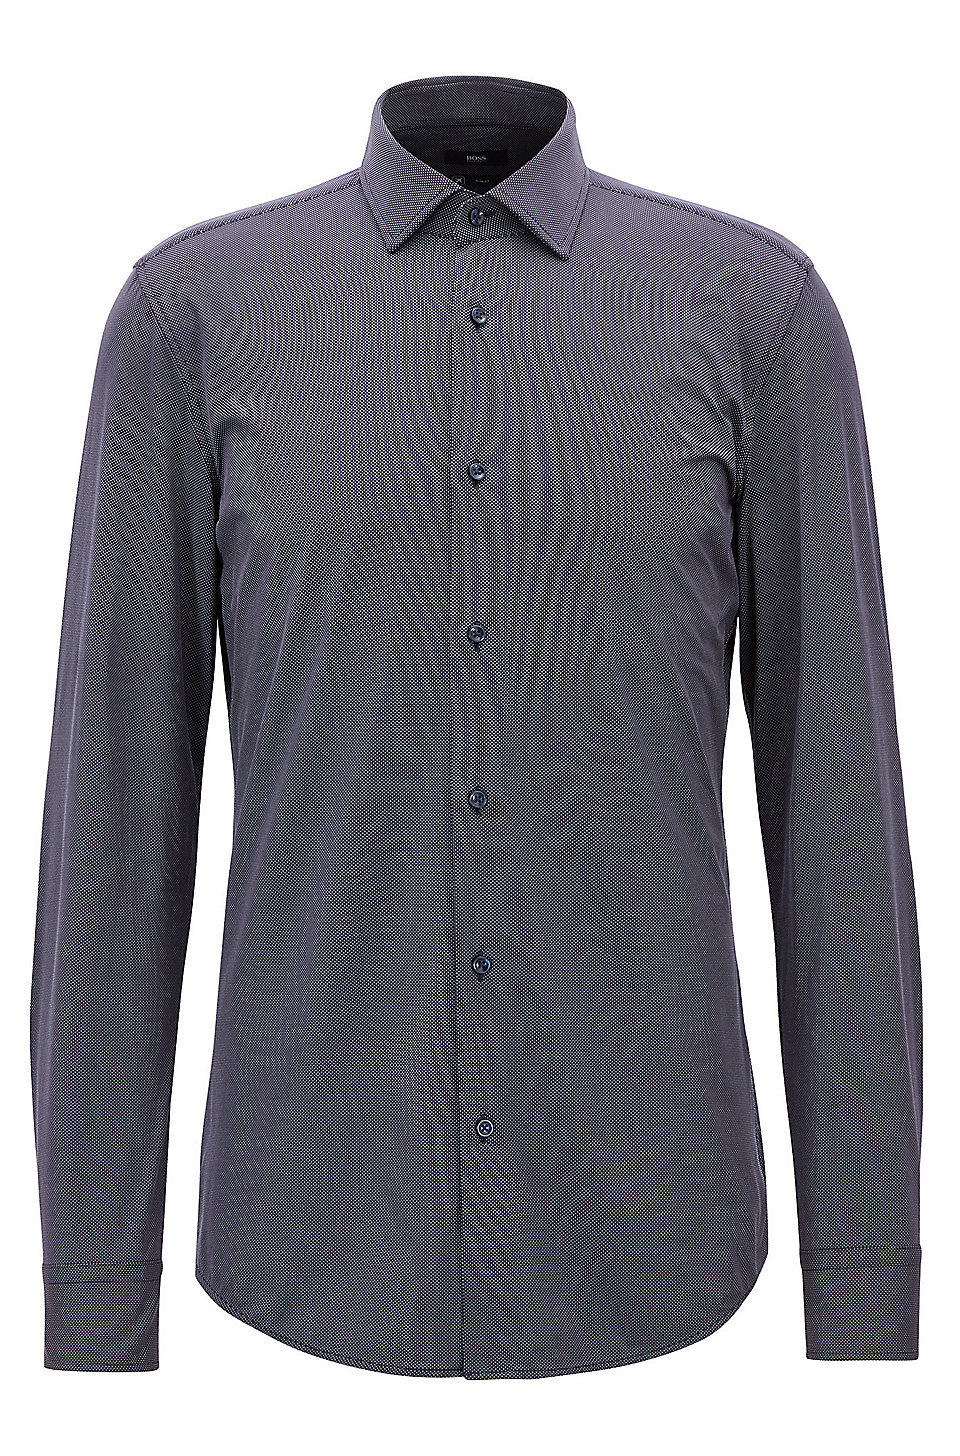 Boss Slim Fit Shirt In Micro Dobby Performance Stretch Fabric